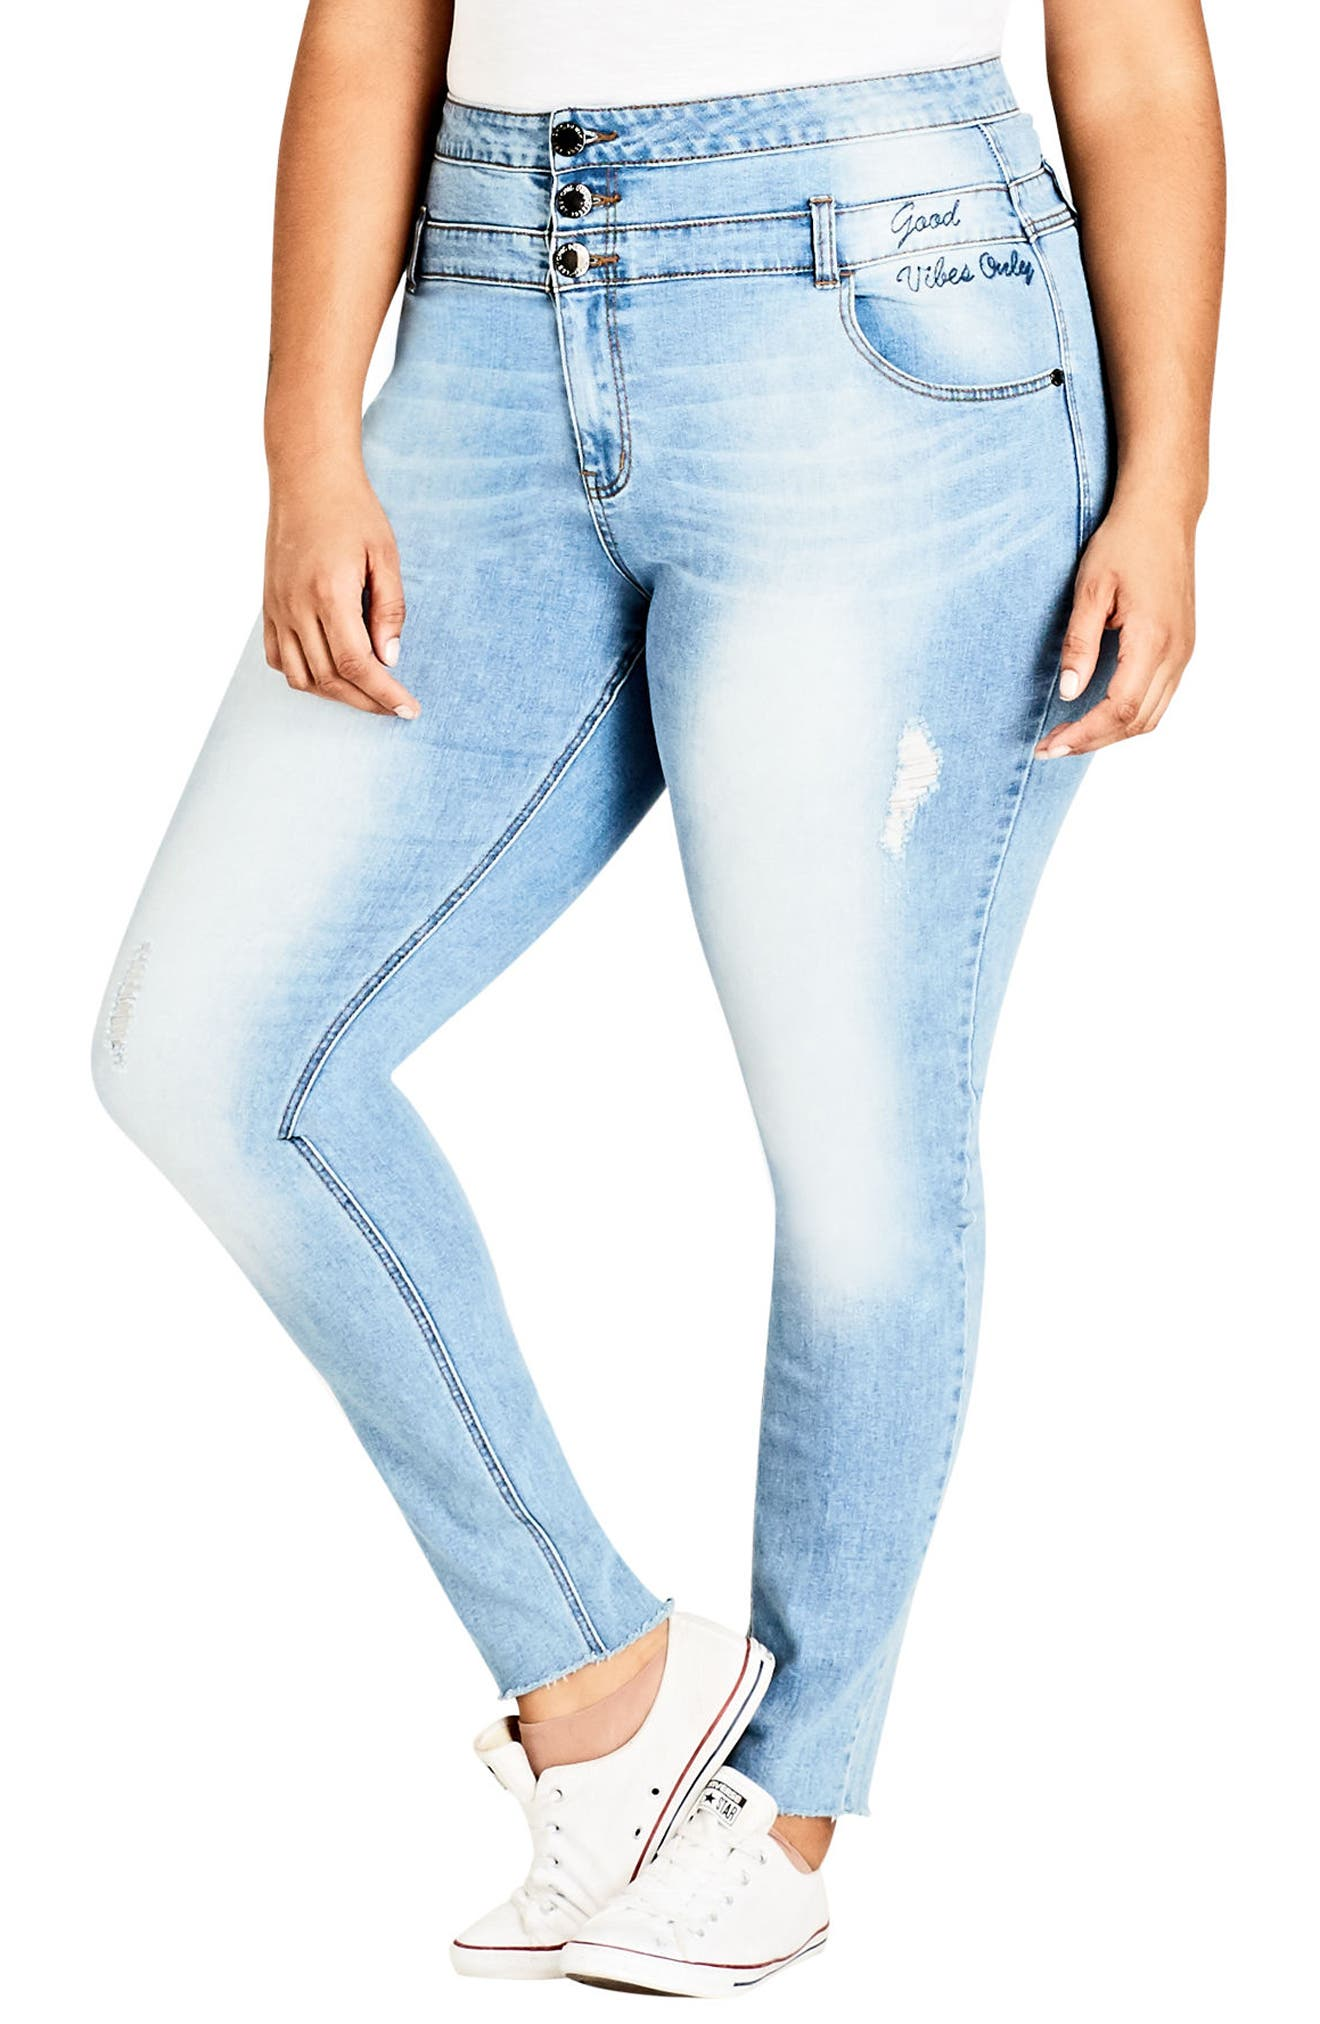 Main Image - City Chic Harley Vibes Ripped Corset Skinny Jeans (Plus Size)